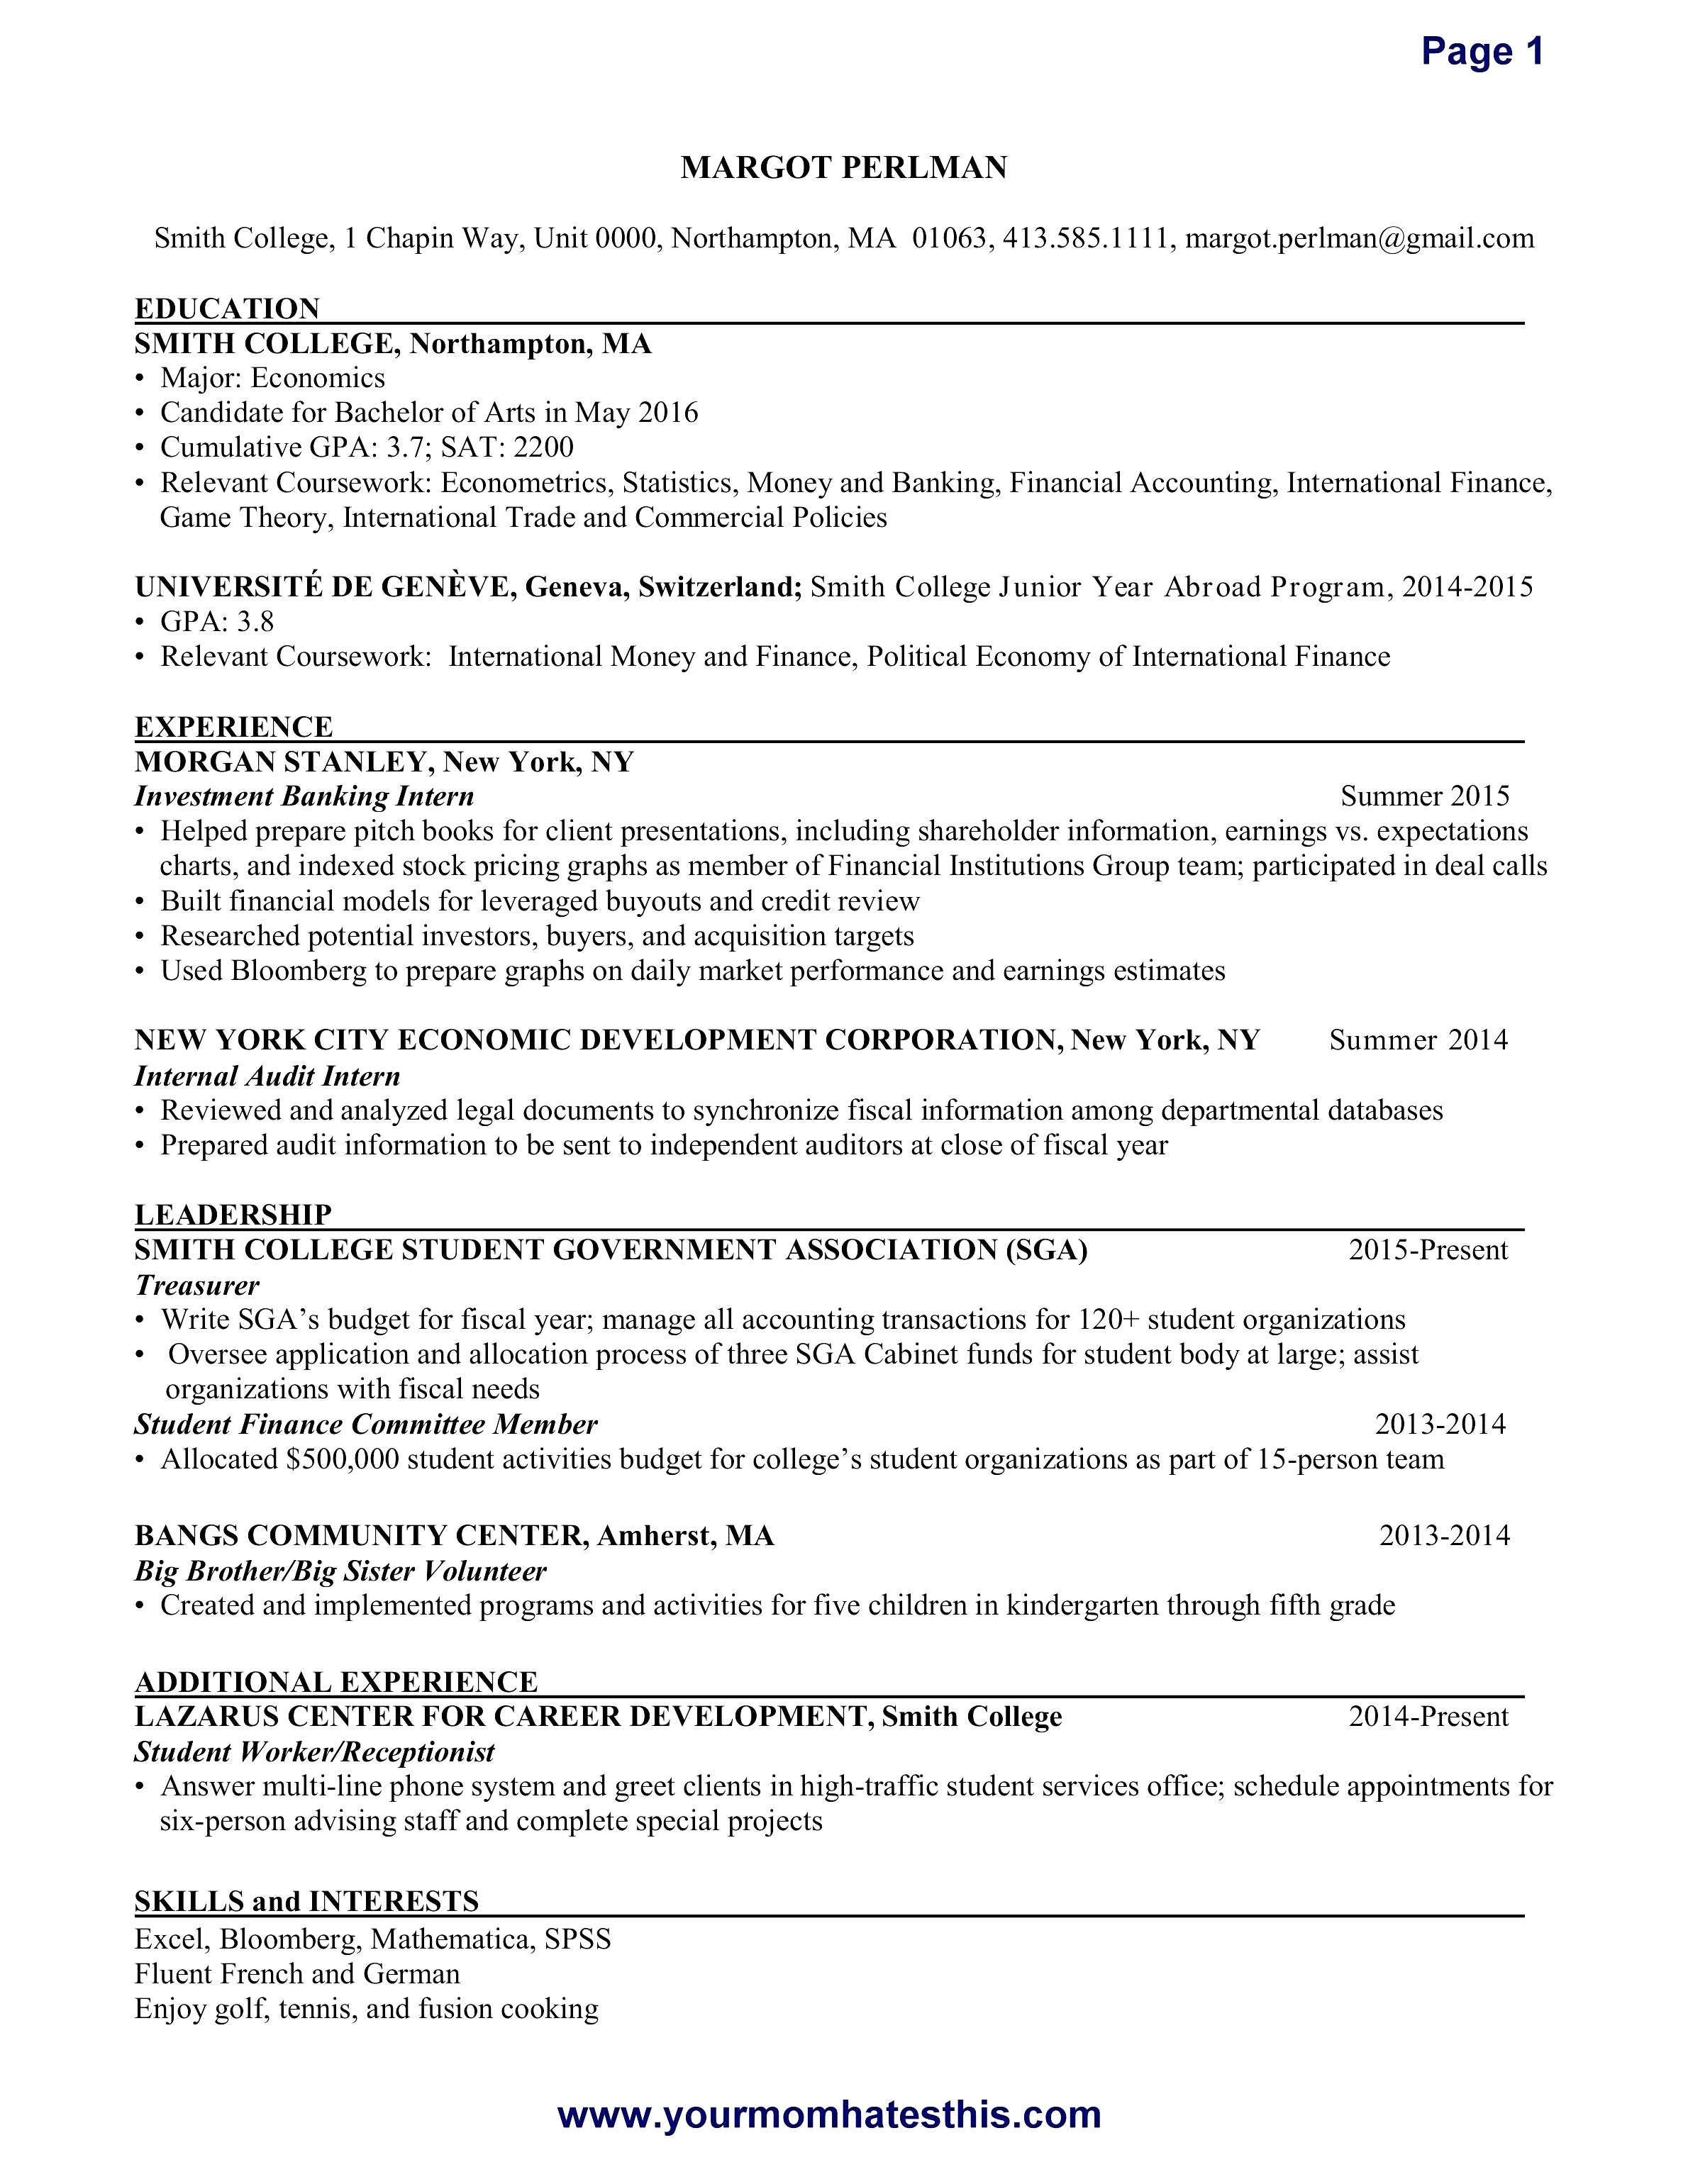 Retail Resume No Experience - 61 Concepts Free Sample Resumes